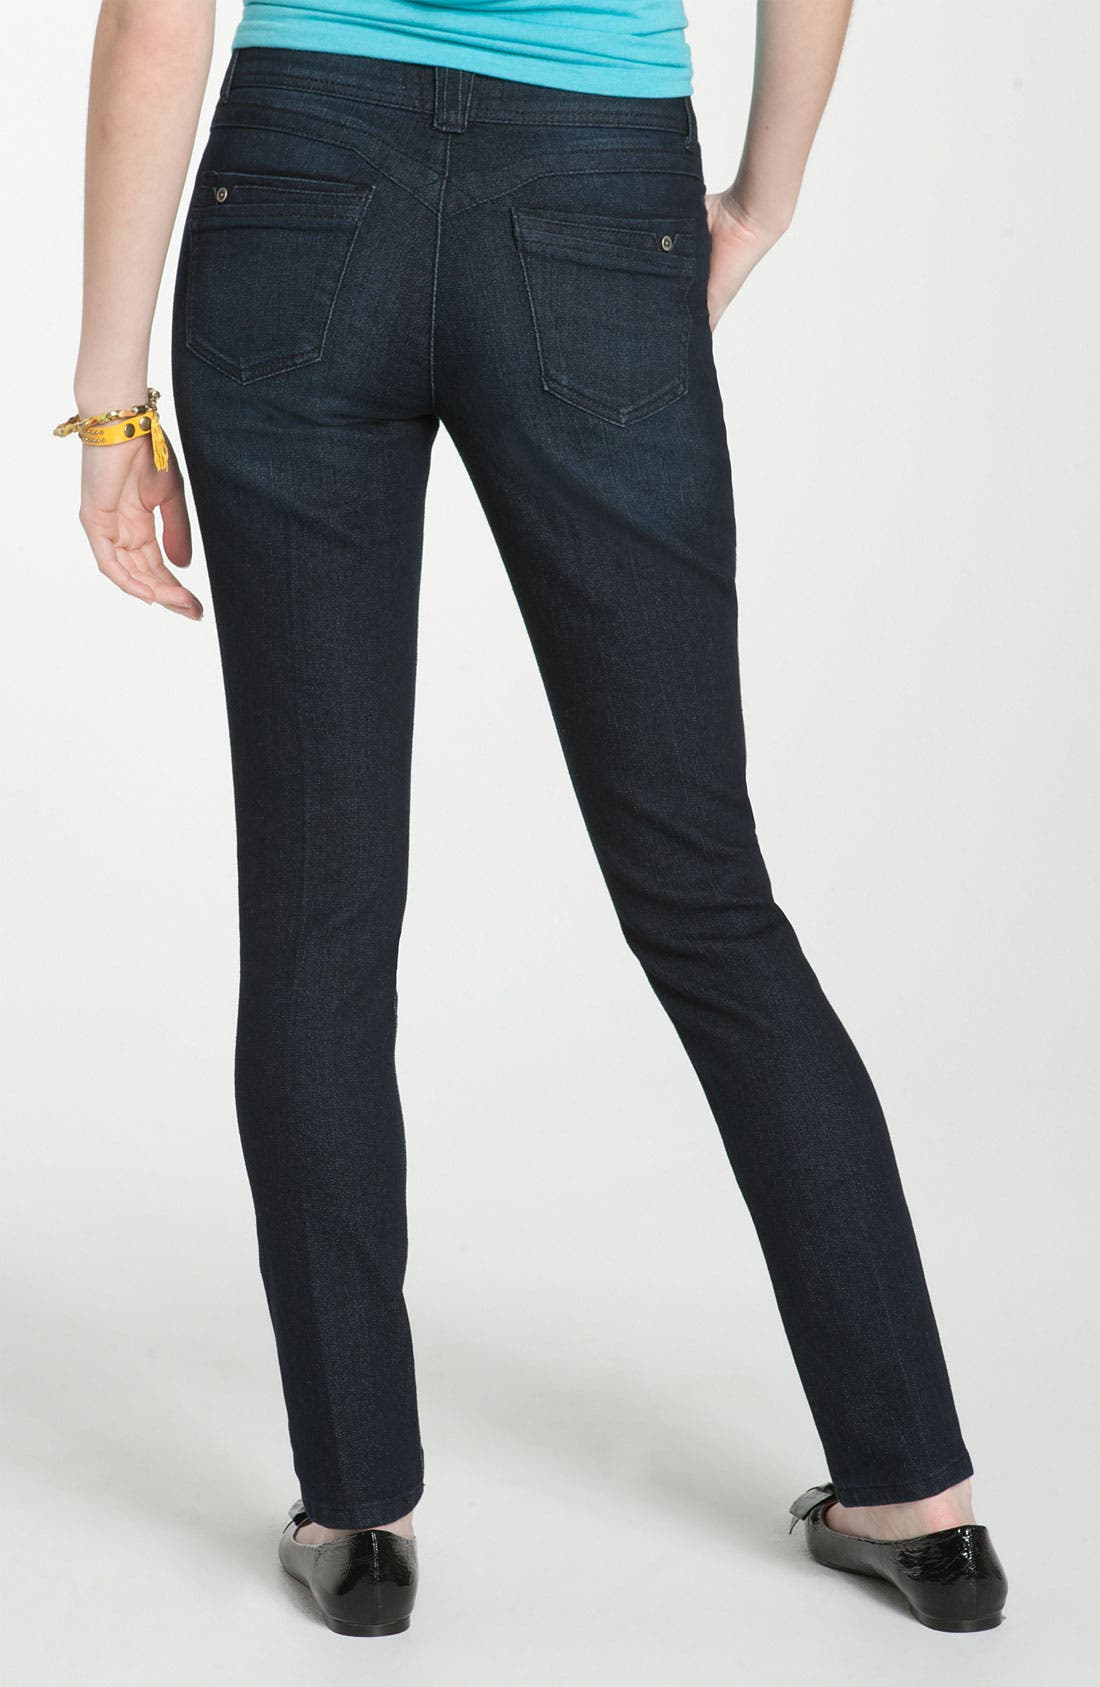 Alternate Image 1 Selected - Jolt 'Pick Me Up' Skinny Jeans (Juniors)